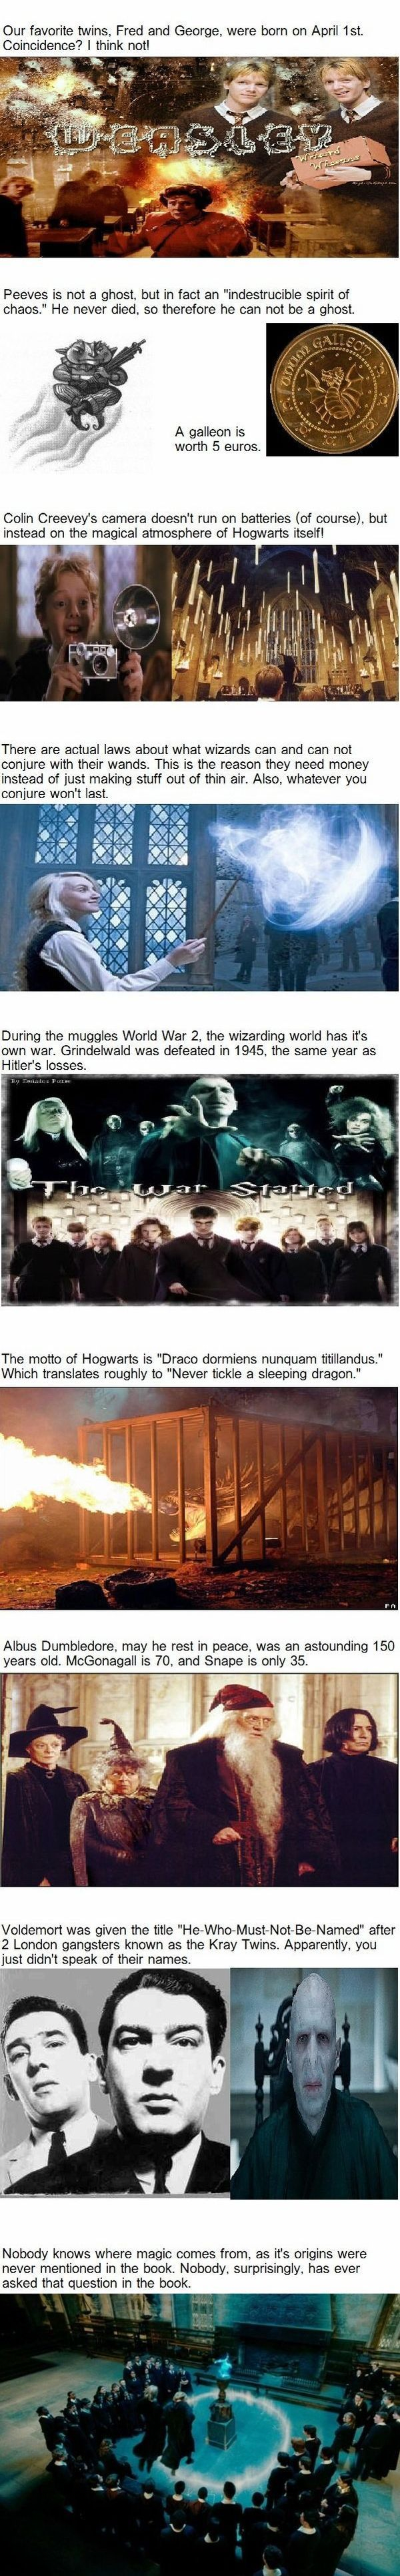 Fun  Harry Potter Facts...except Snape was actually 37 when he died. ^^ apparently